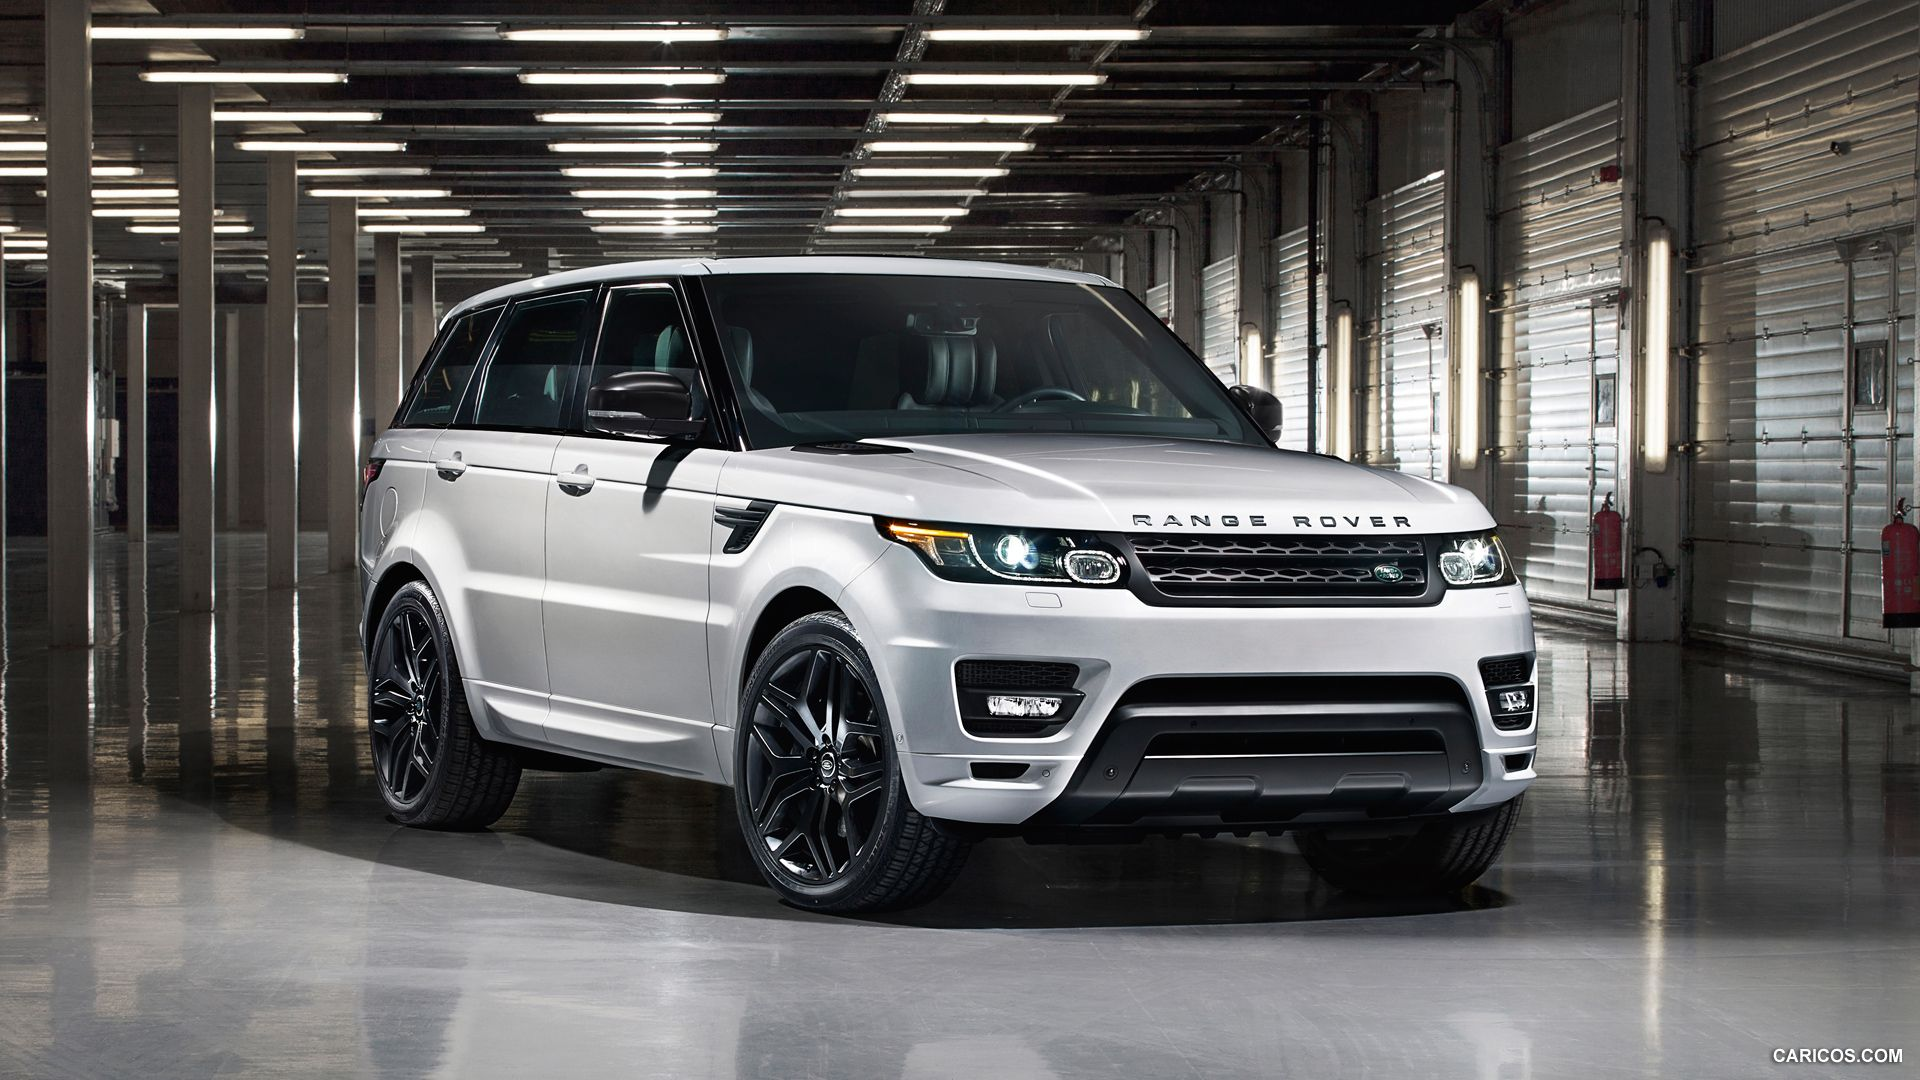 Vehicles Range Rover Sport wallpapers Desktop Phone Tablet